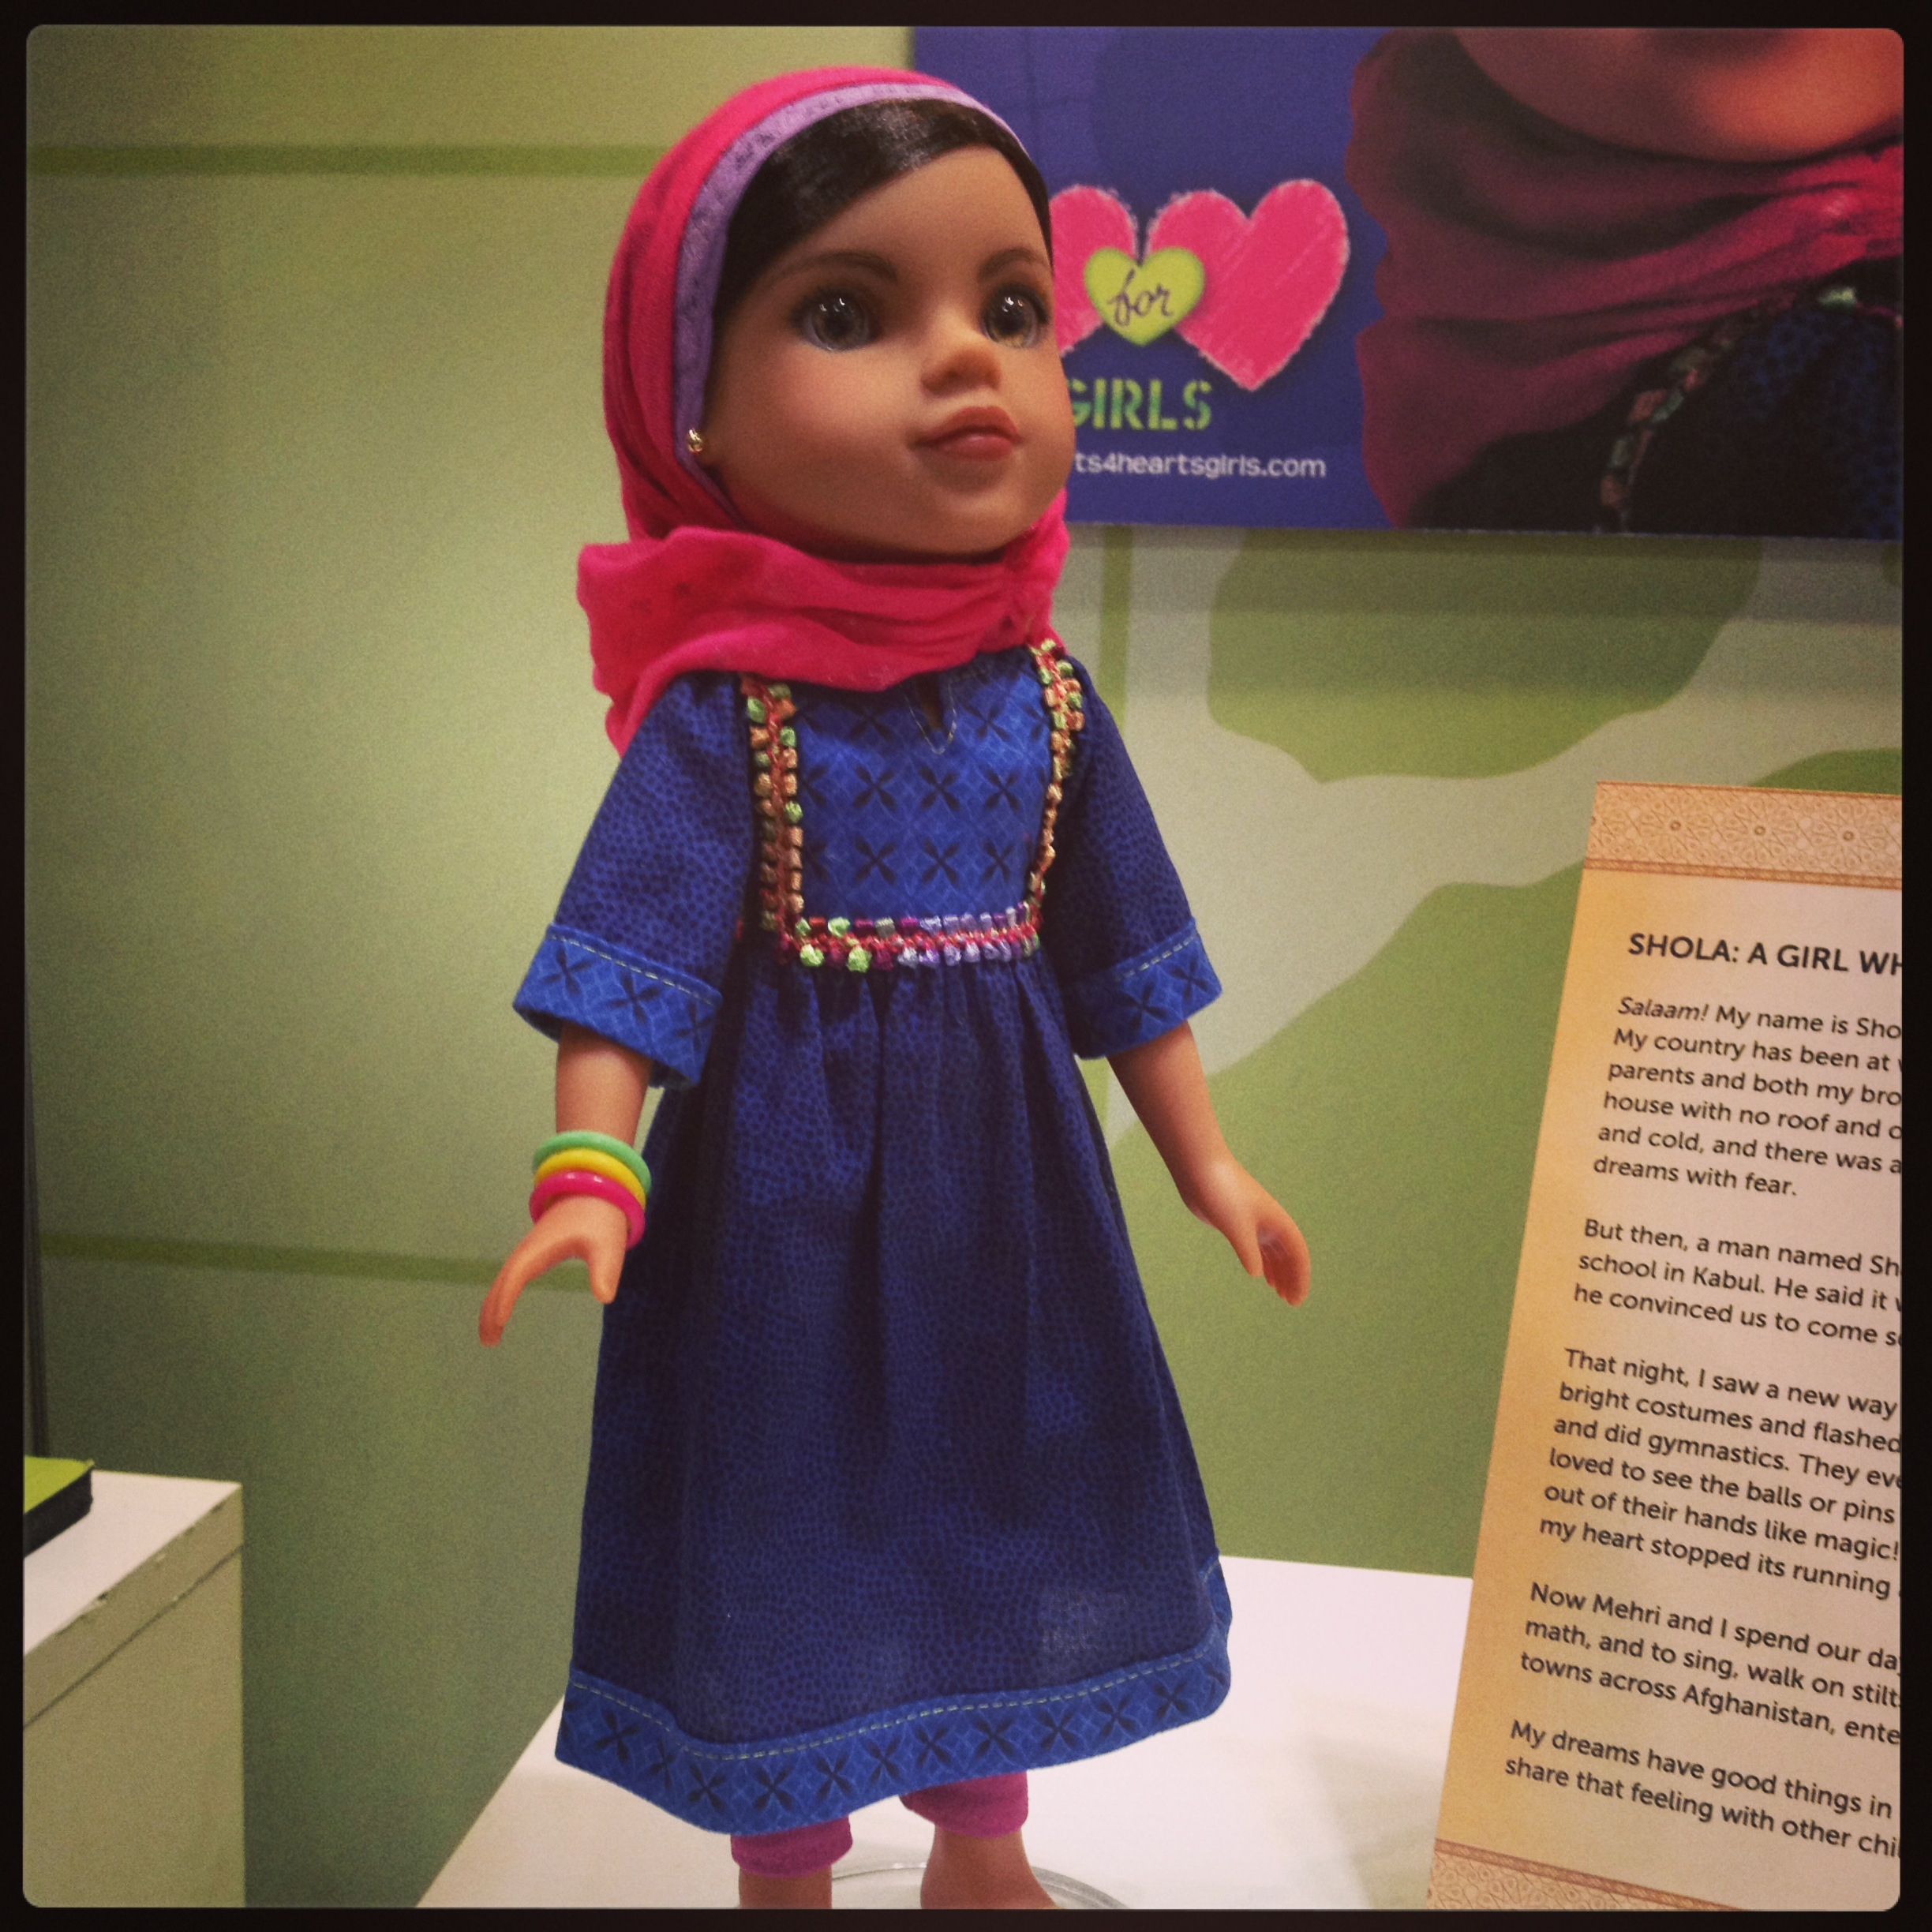 Heart For Heart dolls represent underserved countries around the world. The latest doll in the collection is Shola from Afghanistan.